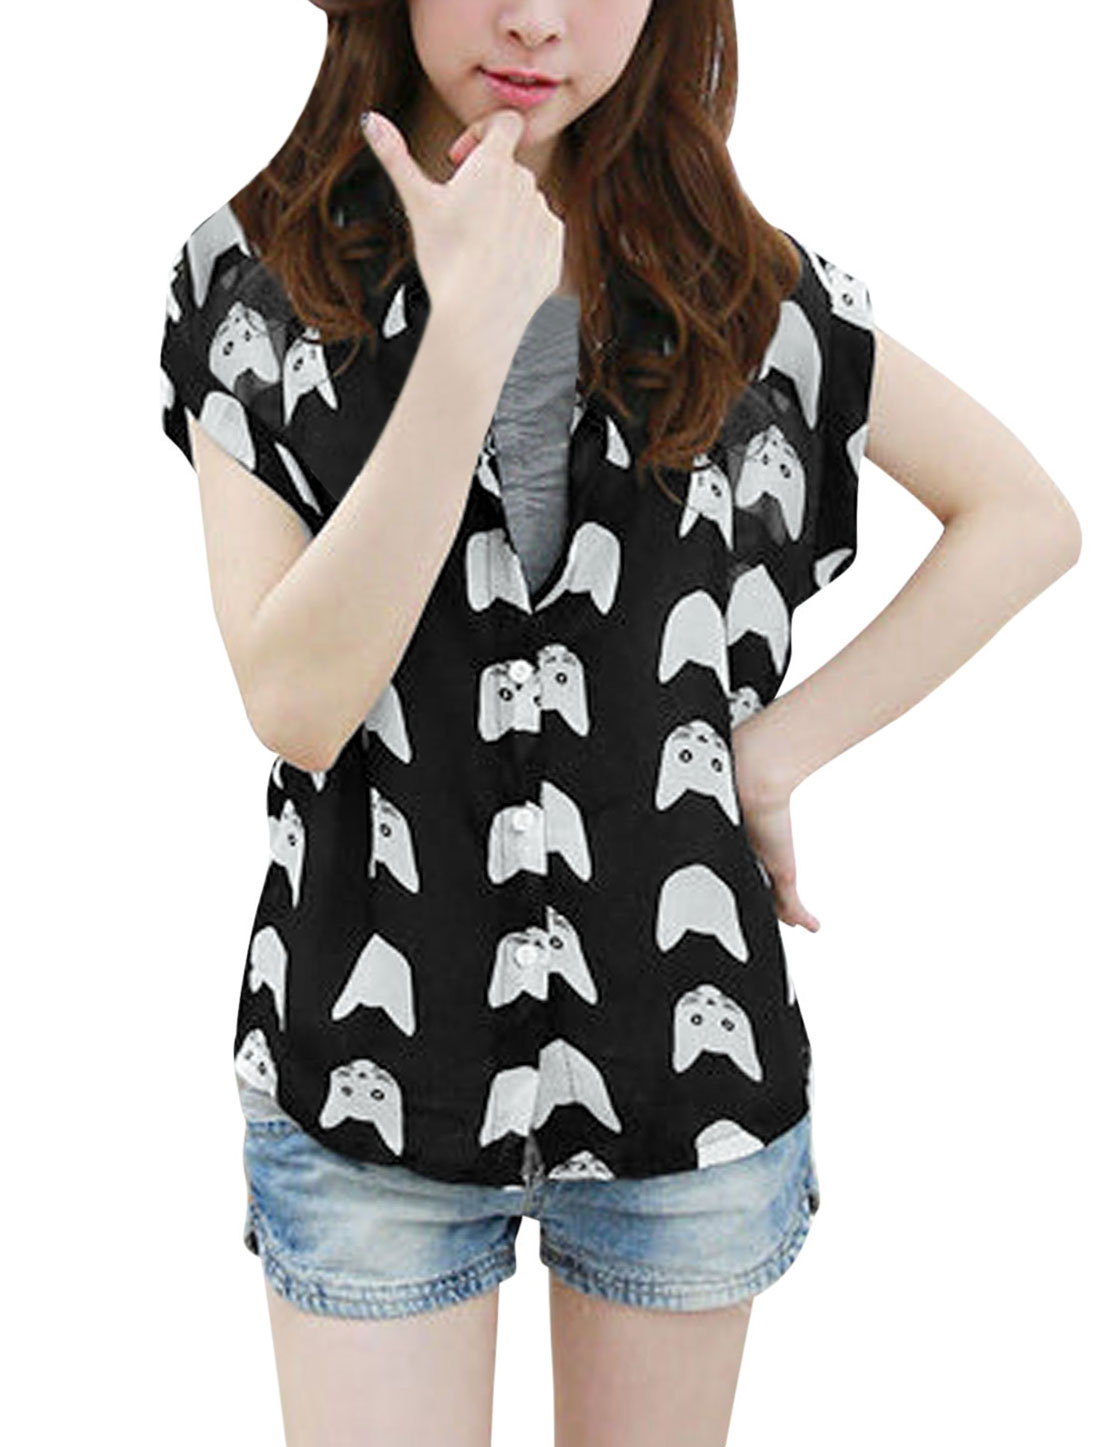 Women Short Batwing Sleeve Cartoon Cat Head Pattern Chiffon Shirt Black S